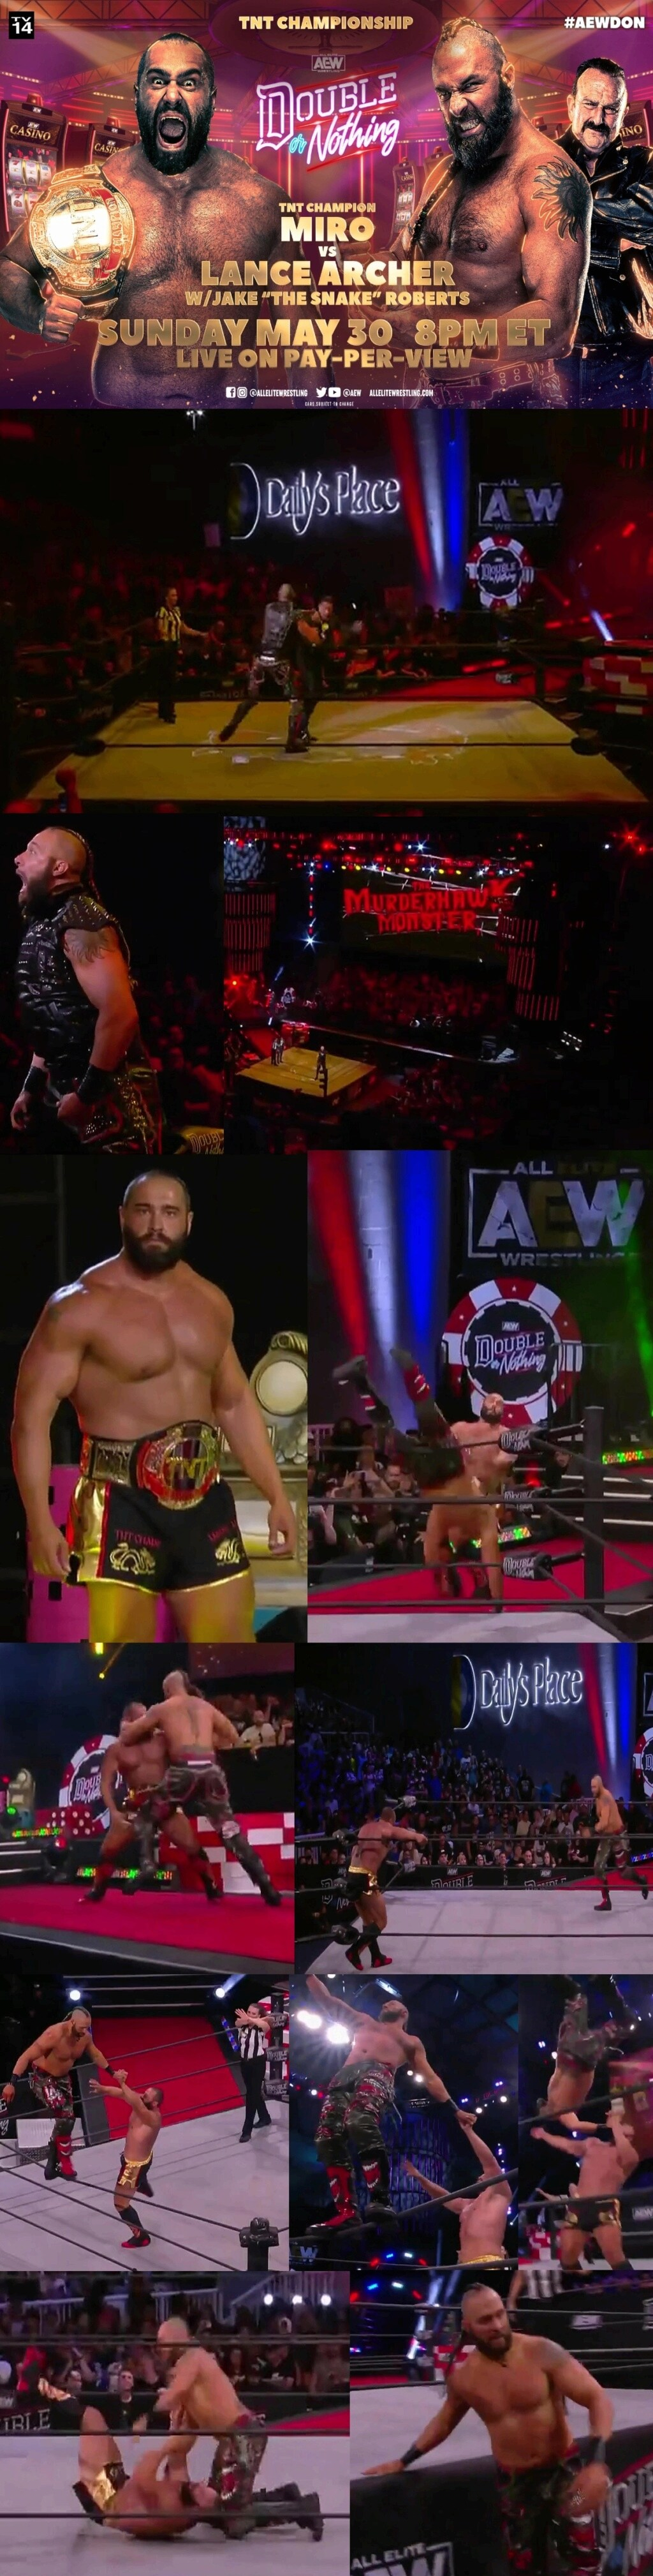 Official Wrestling PPV Topics: WWE Extreme Rules Results! - Page 3 Aew_do52